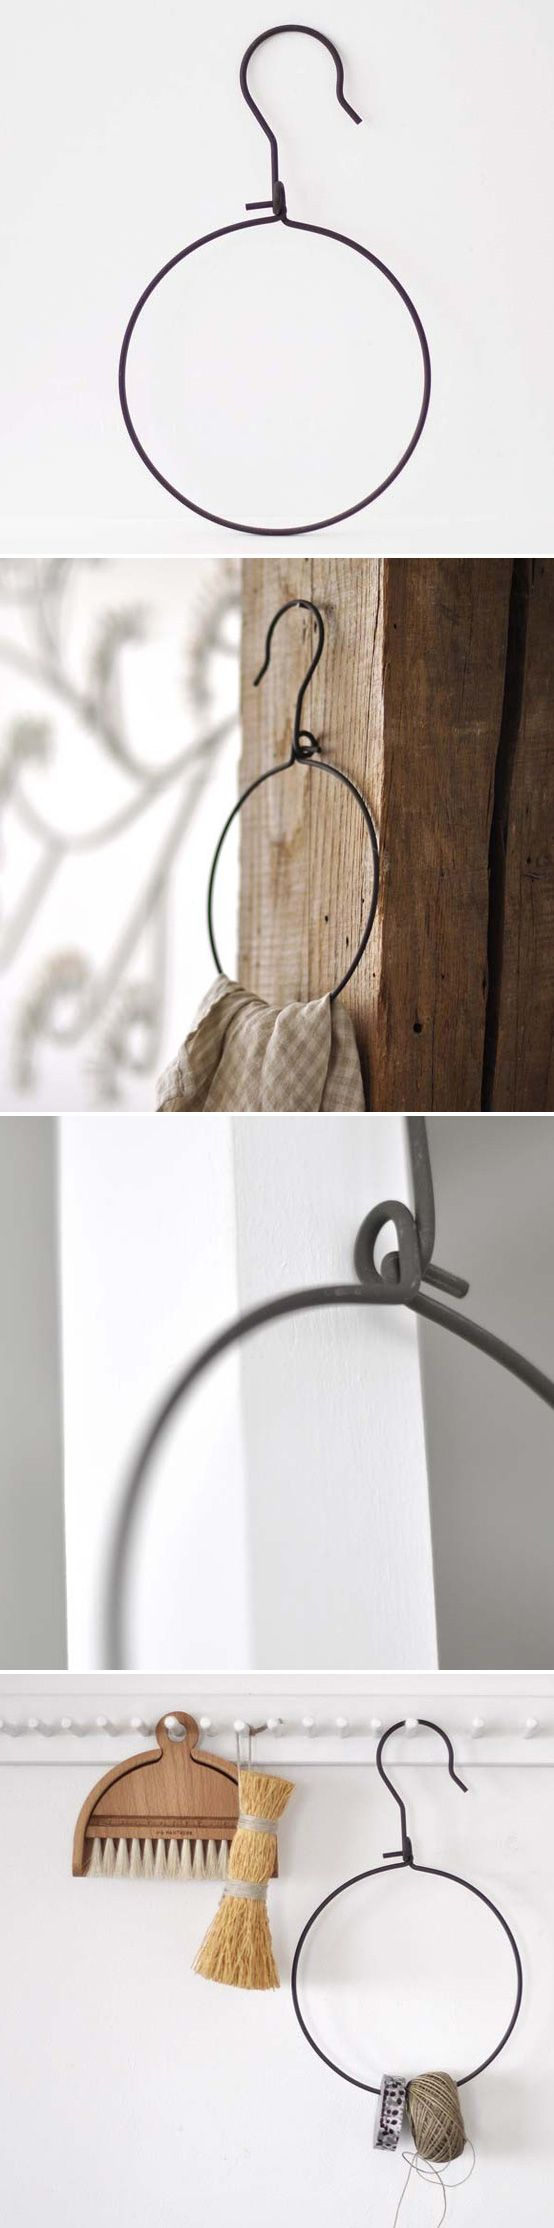 DIY :: WIRE HOOK HANGER: